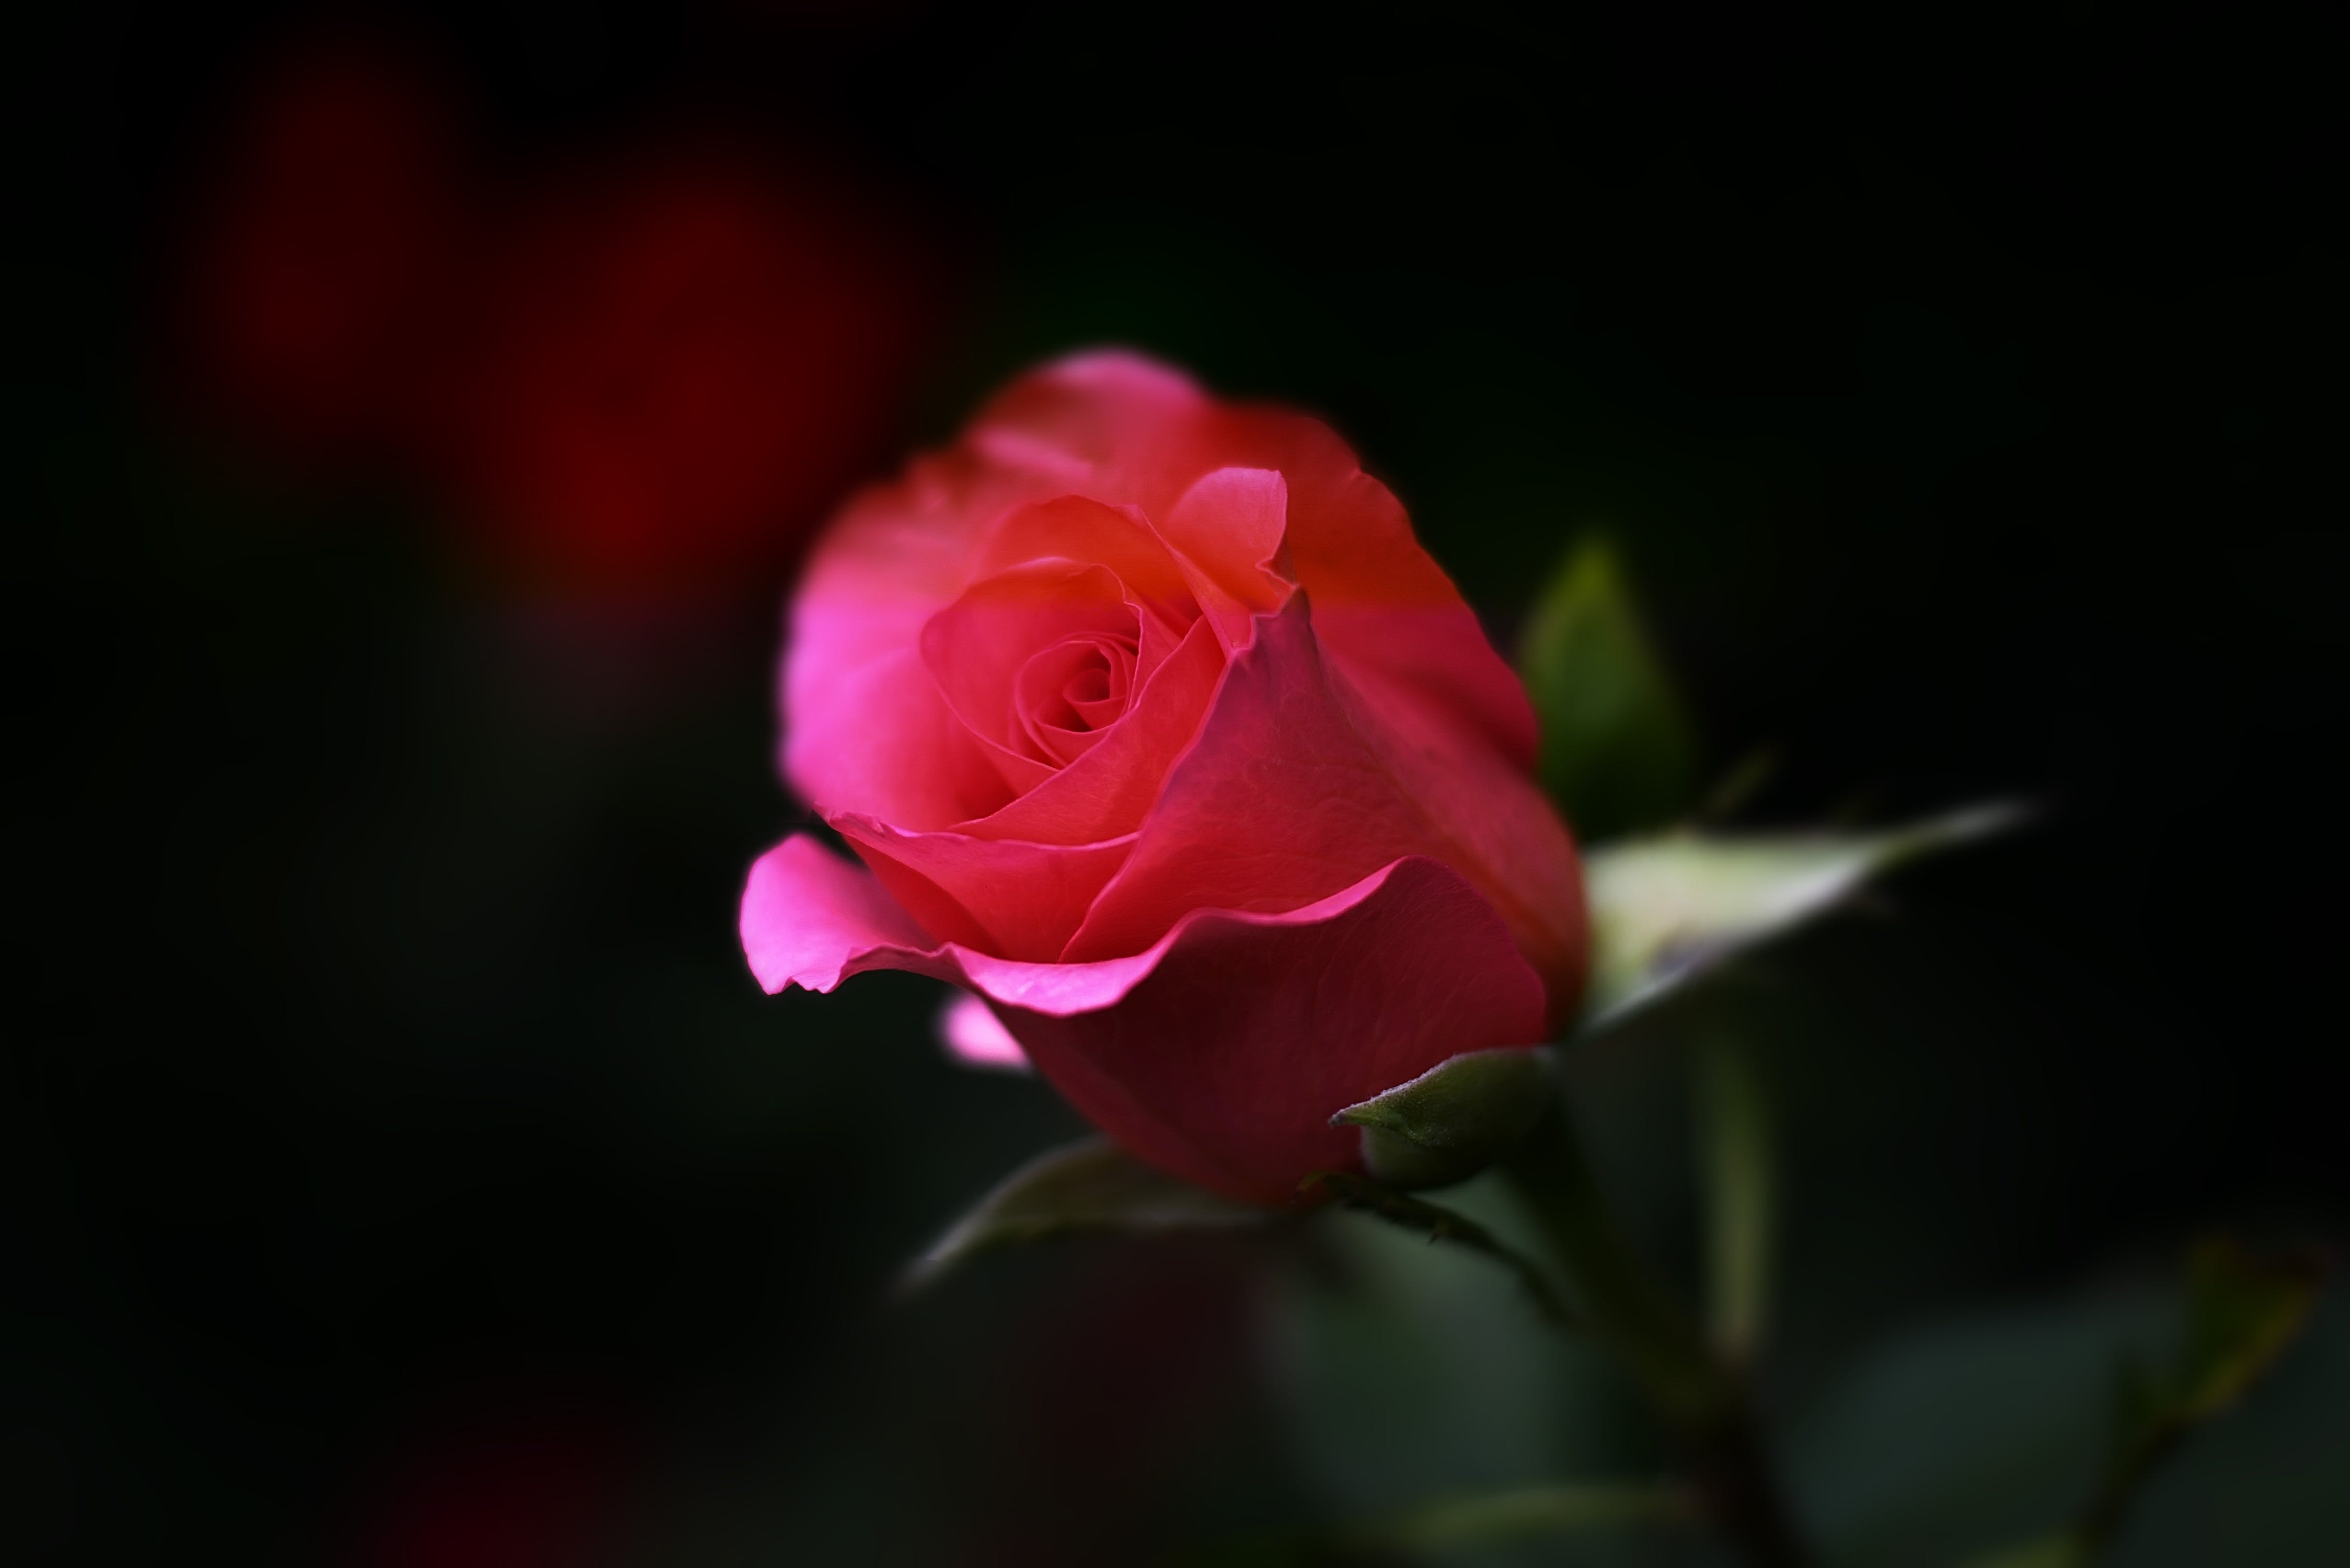 Selective Focus Photo of Pink Rose in Bloom